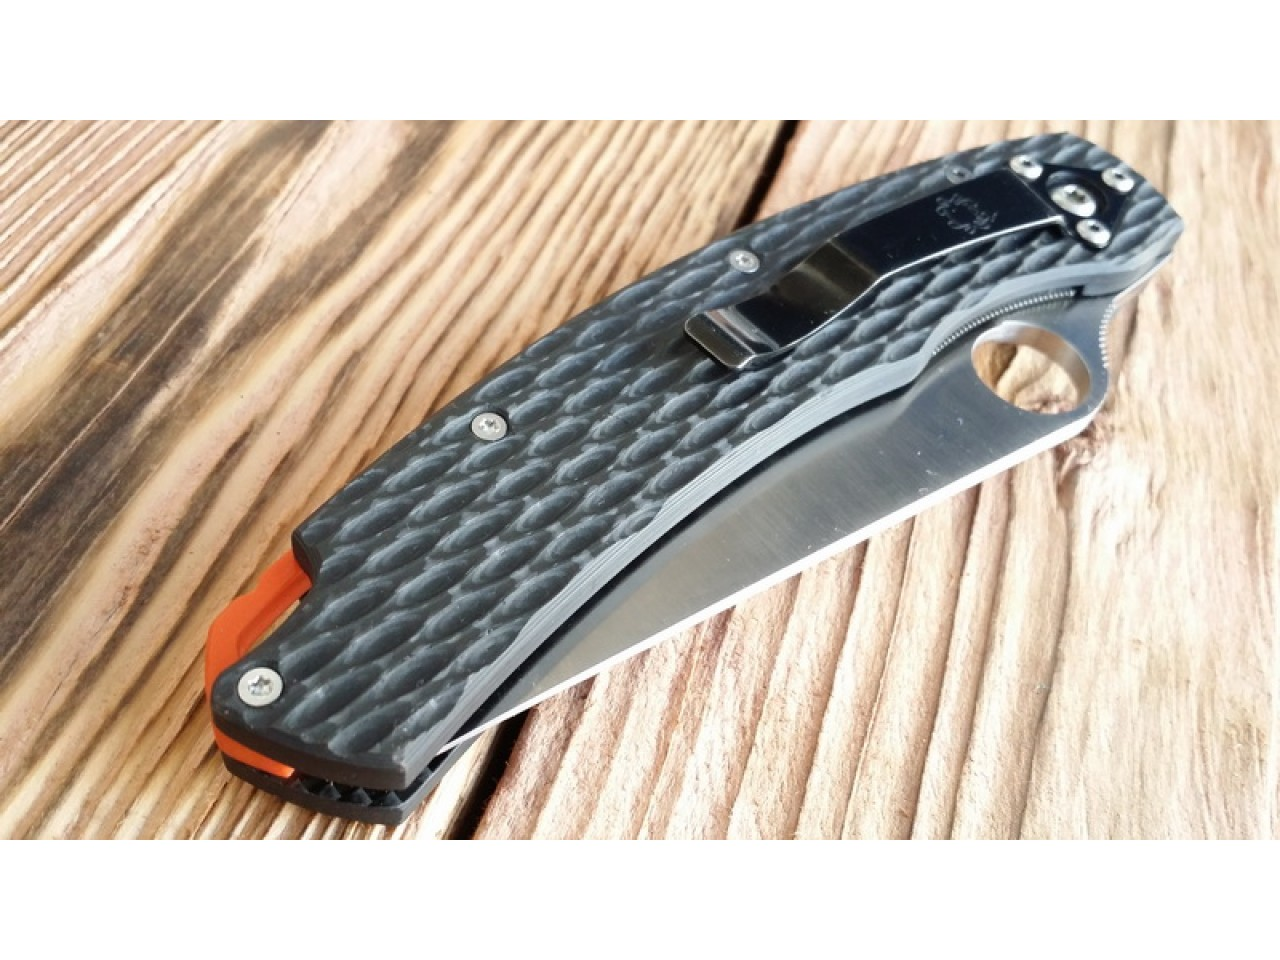 Custome scales Next-Wave, for Spyderco Military knife